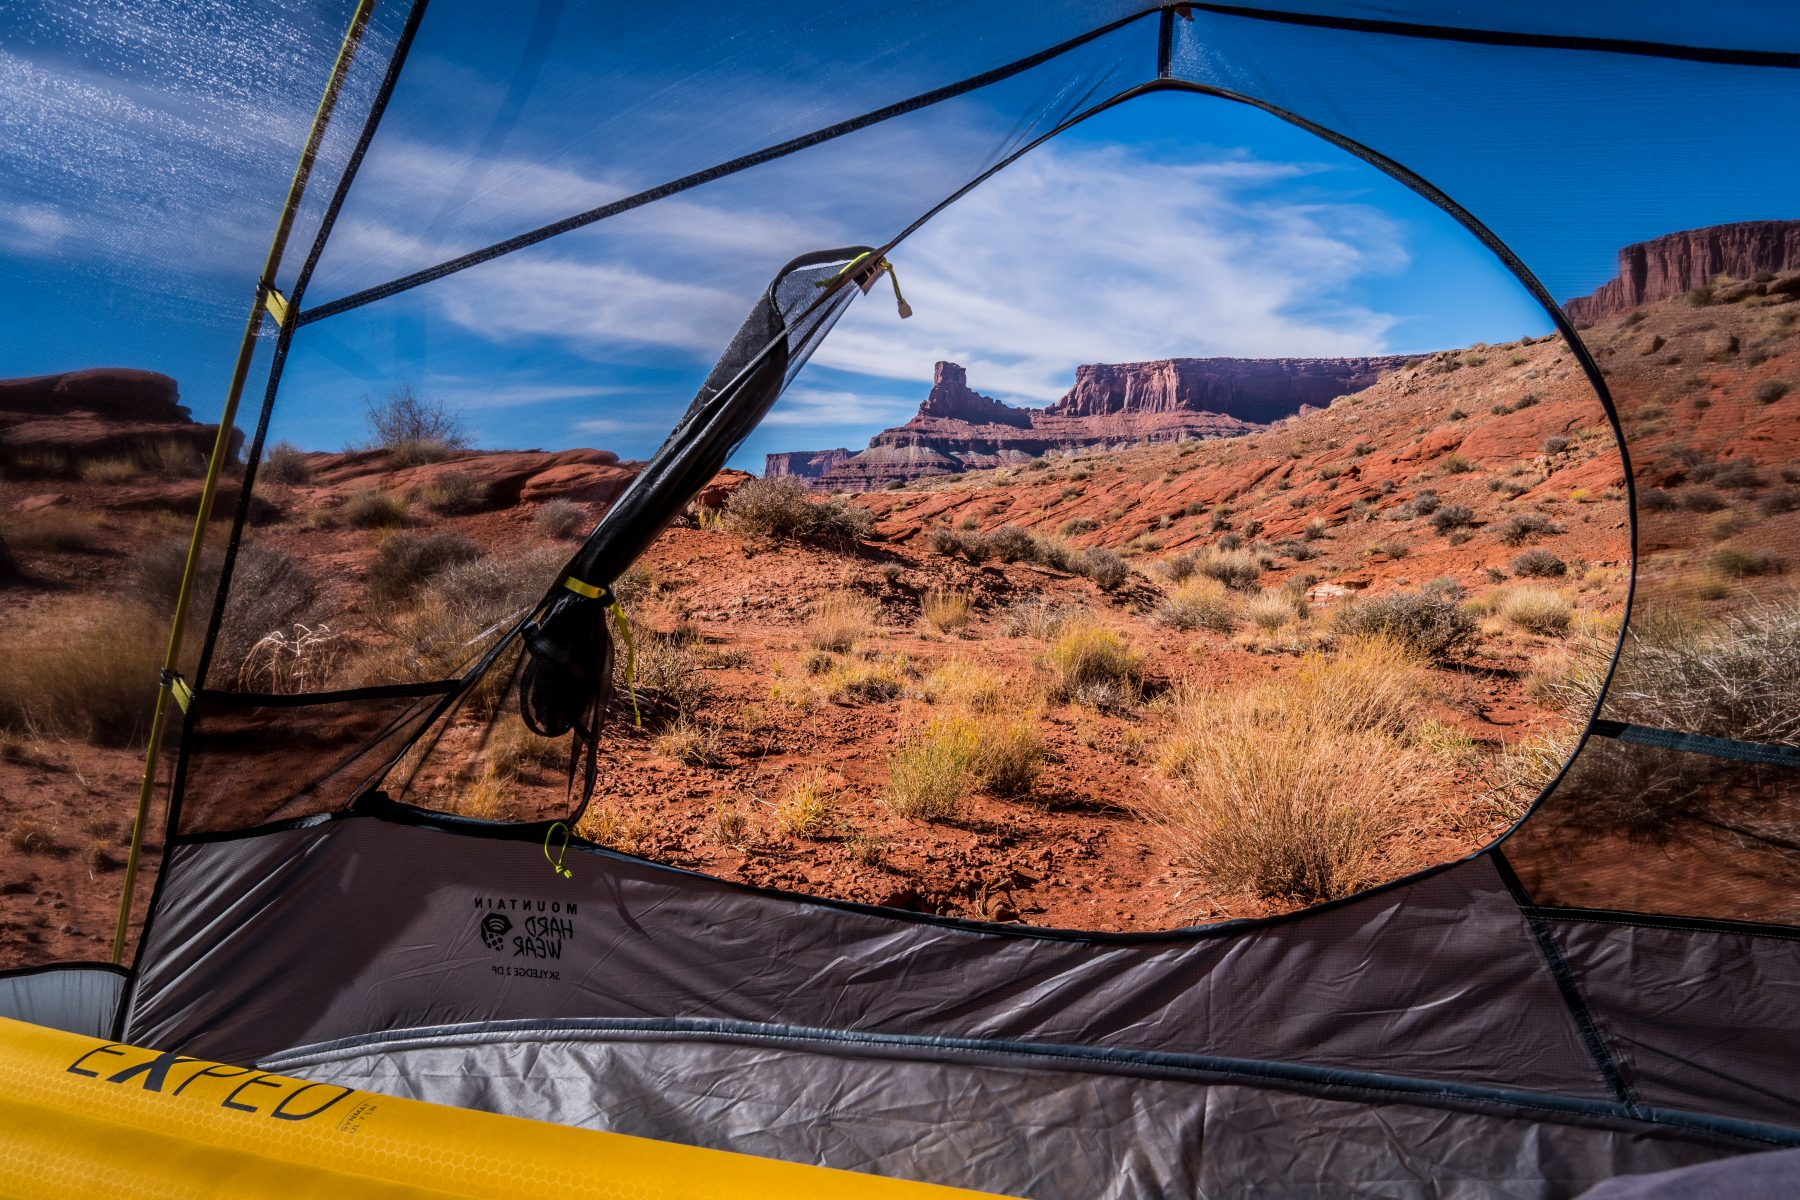 My campsite on BLM land outside Canyonlands National Park